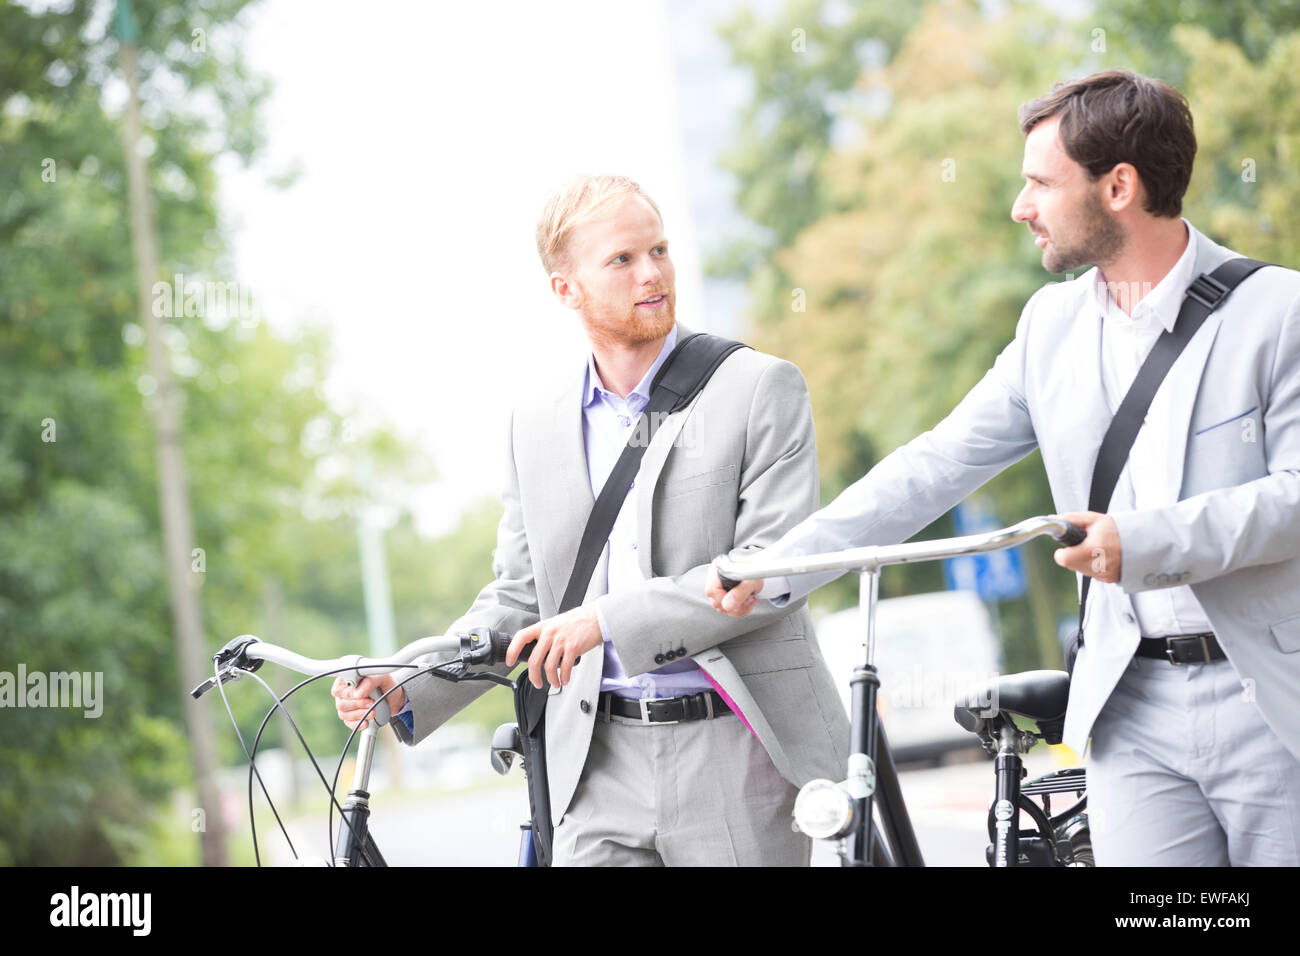 Businessmen looking at each other while holding bicycles outdoors Stock Photo